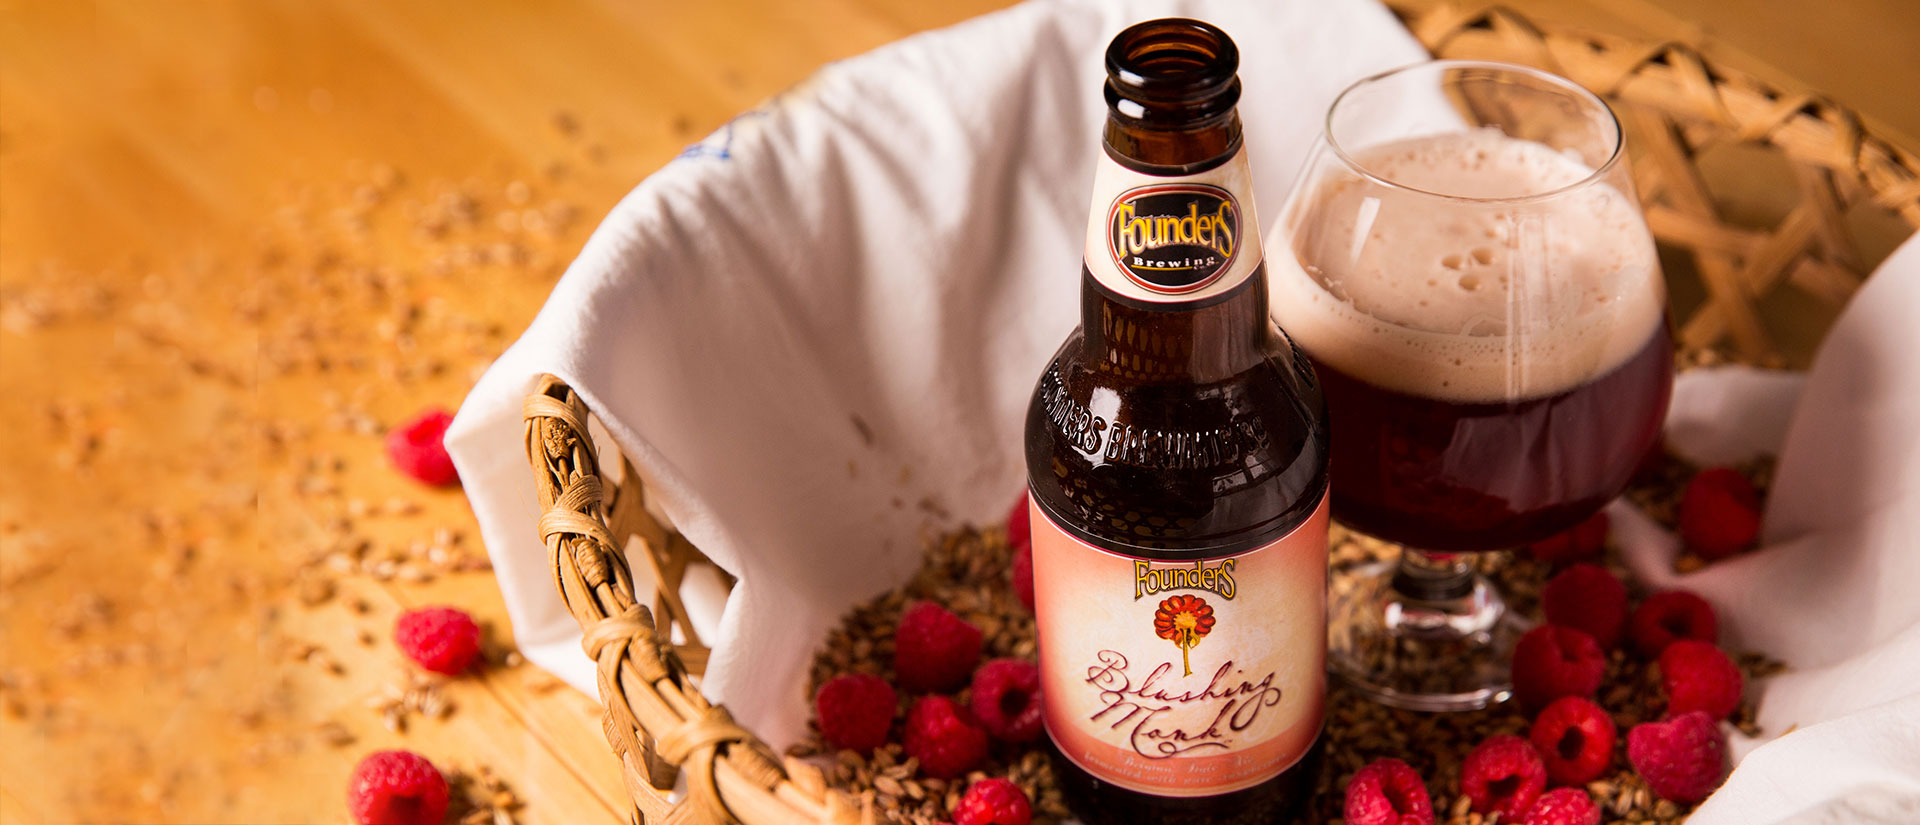 blushing monk bottle and snifter pour in a basket filled with raspberries